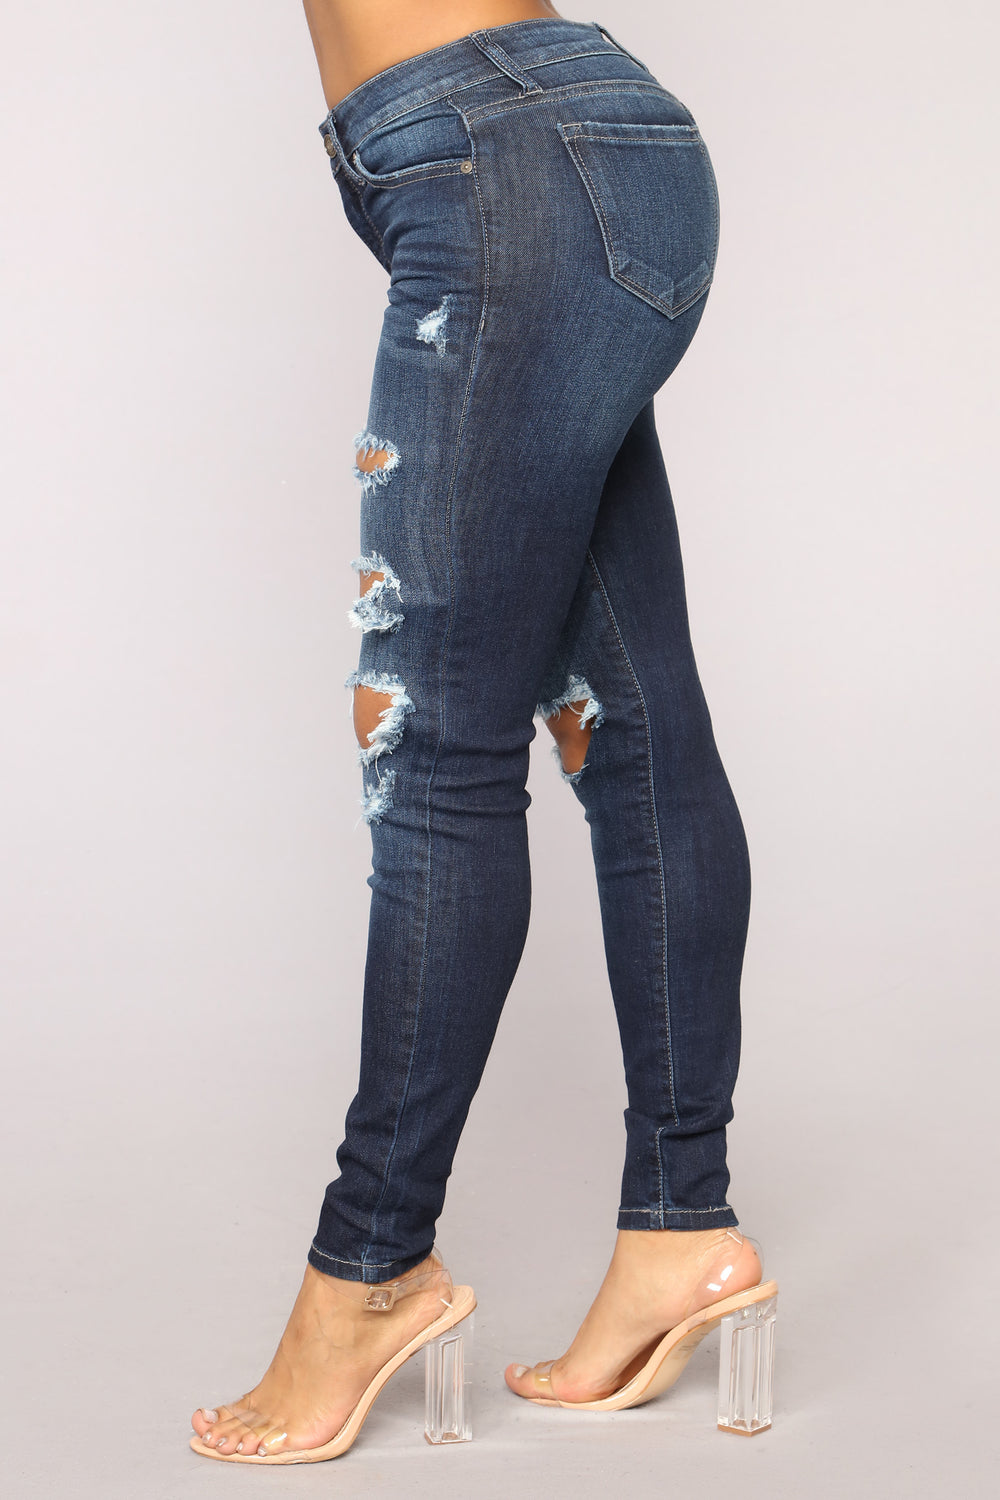 Saint High Rise Jeans - Dark Denim